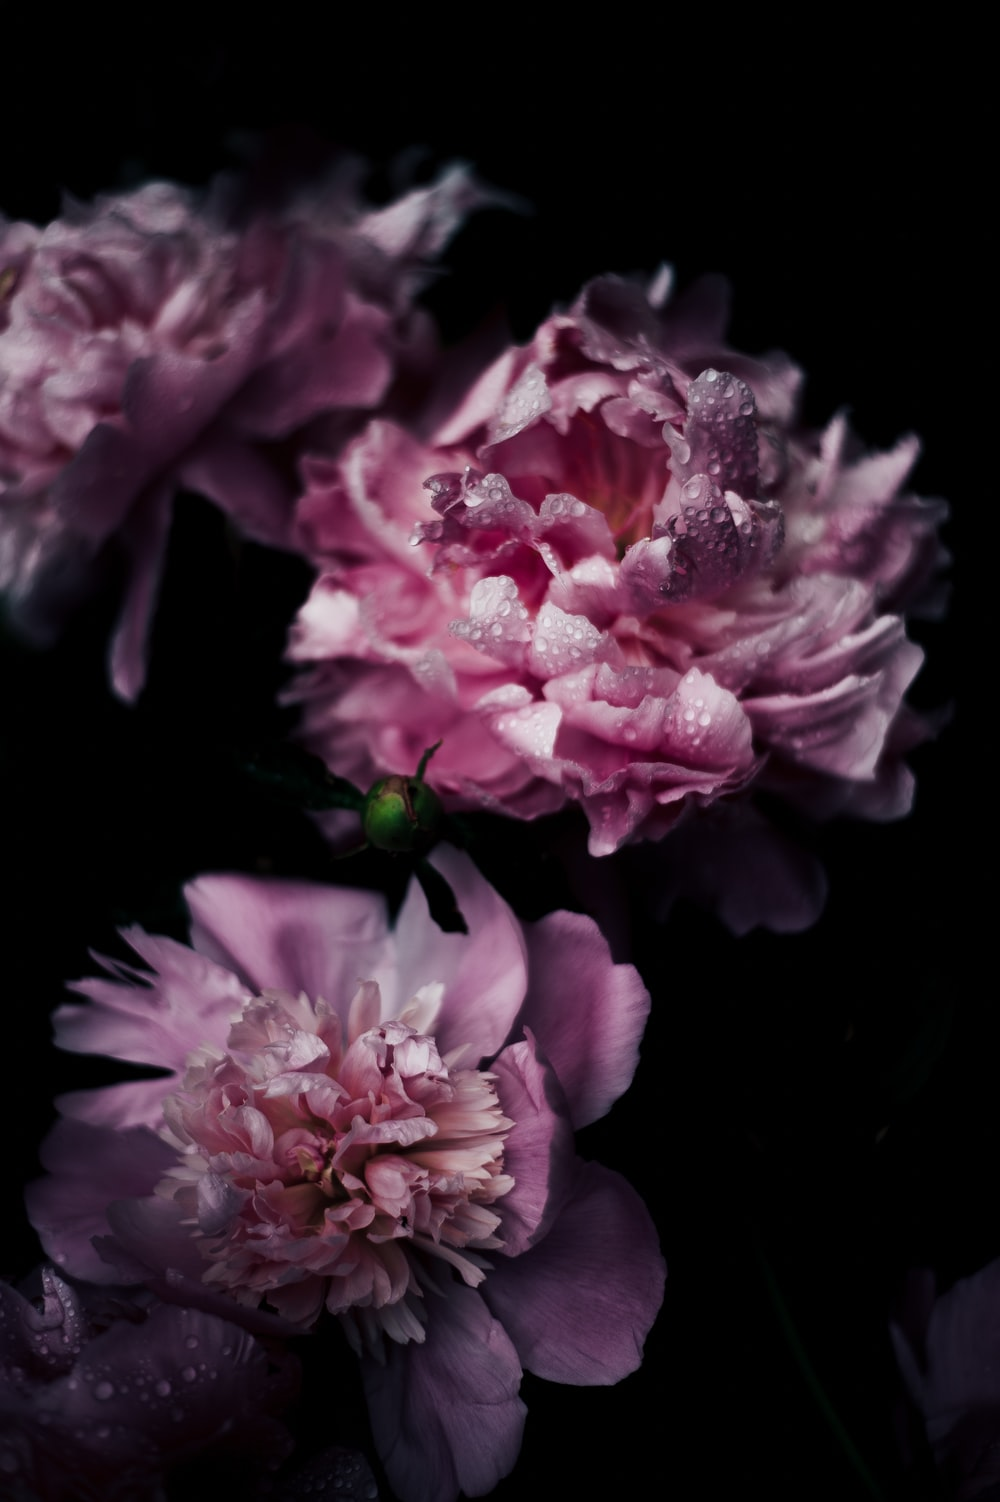 shallow focus photography of purple carnation flowers